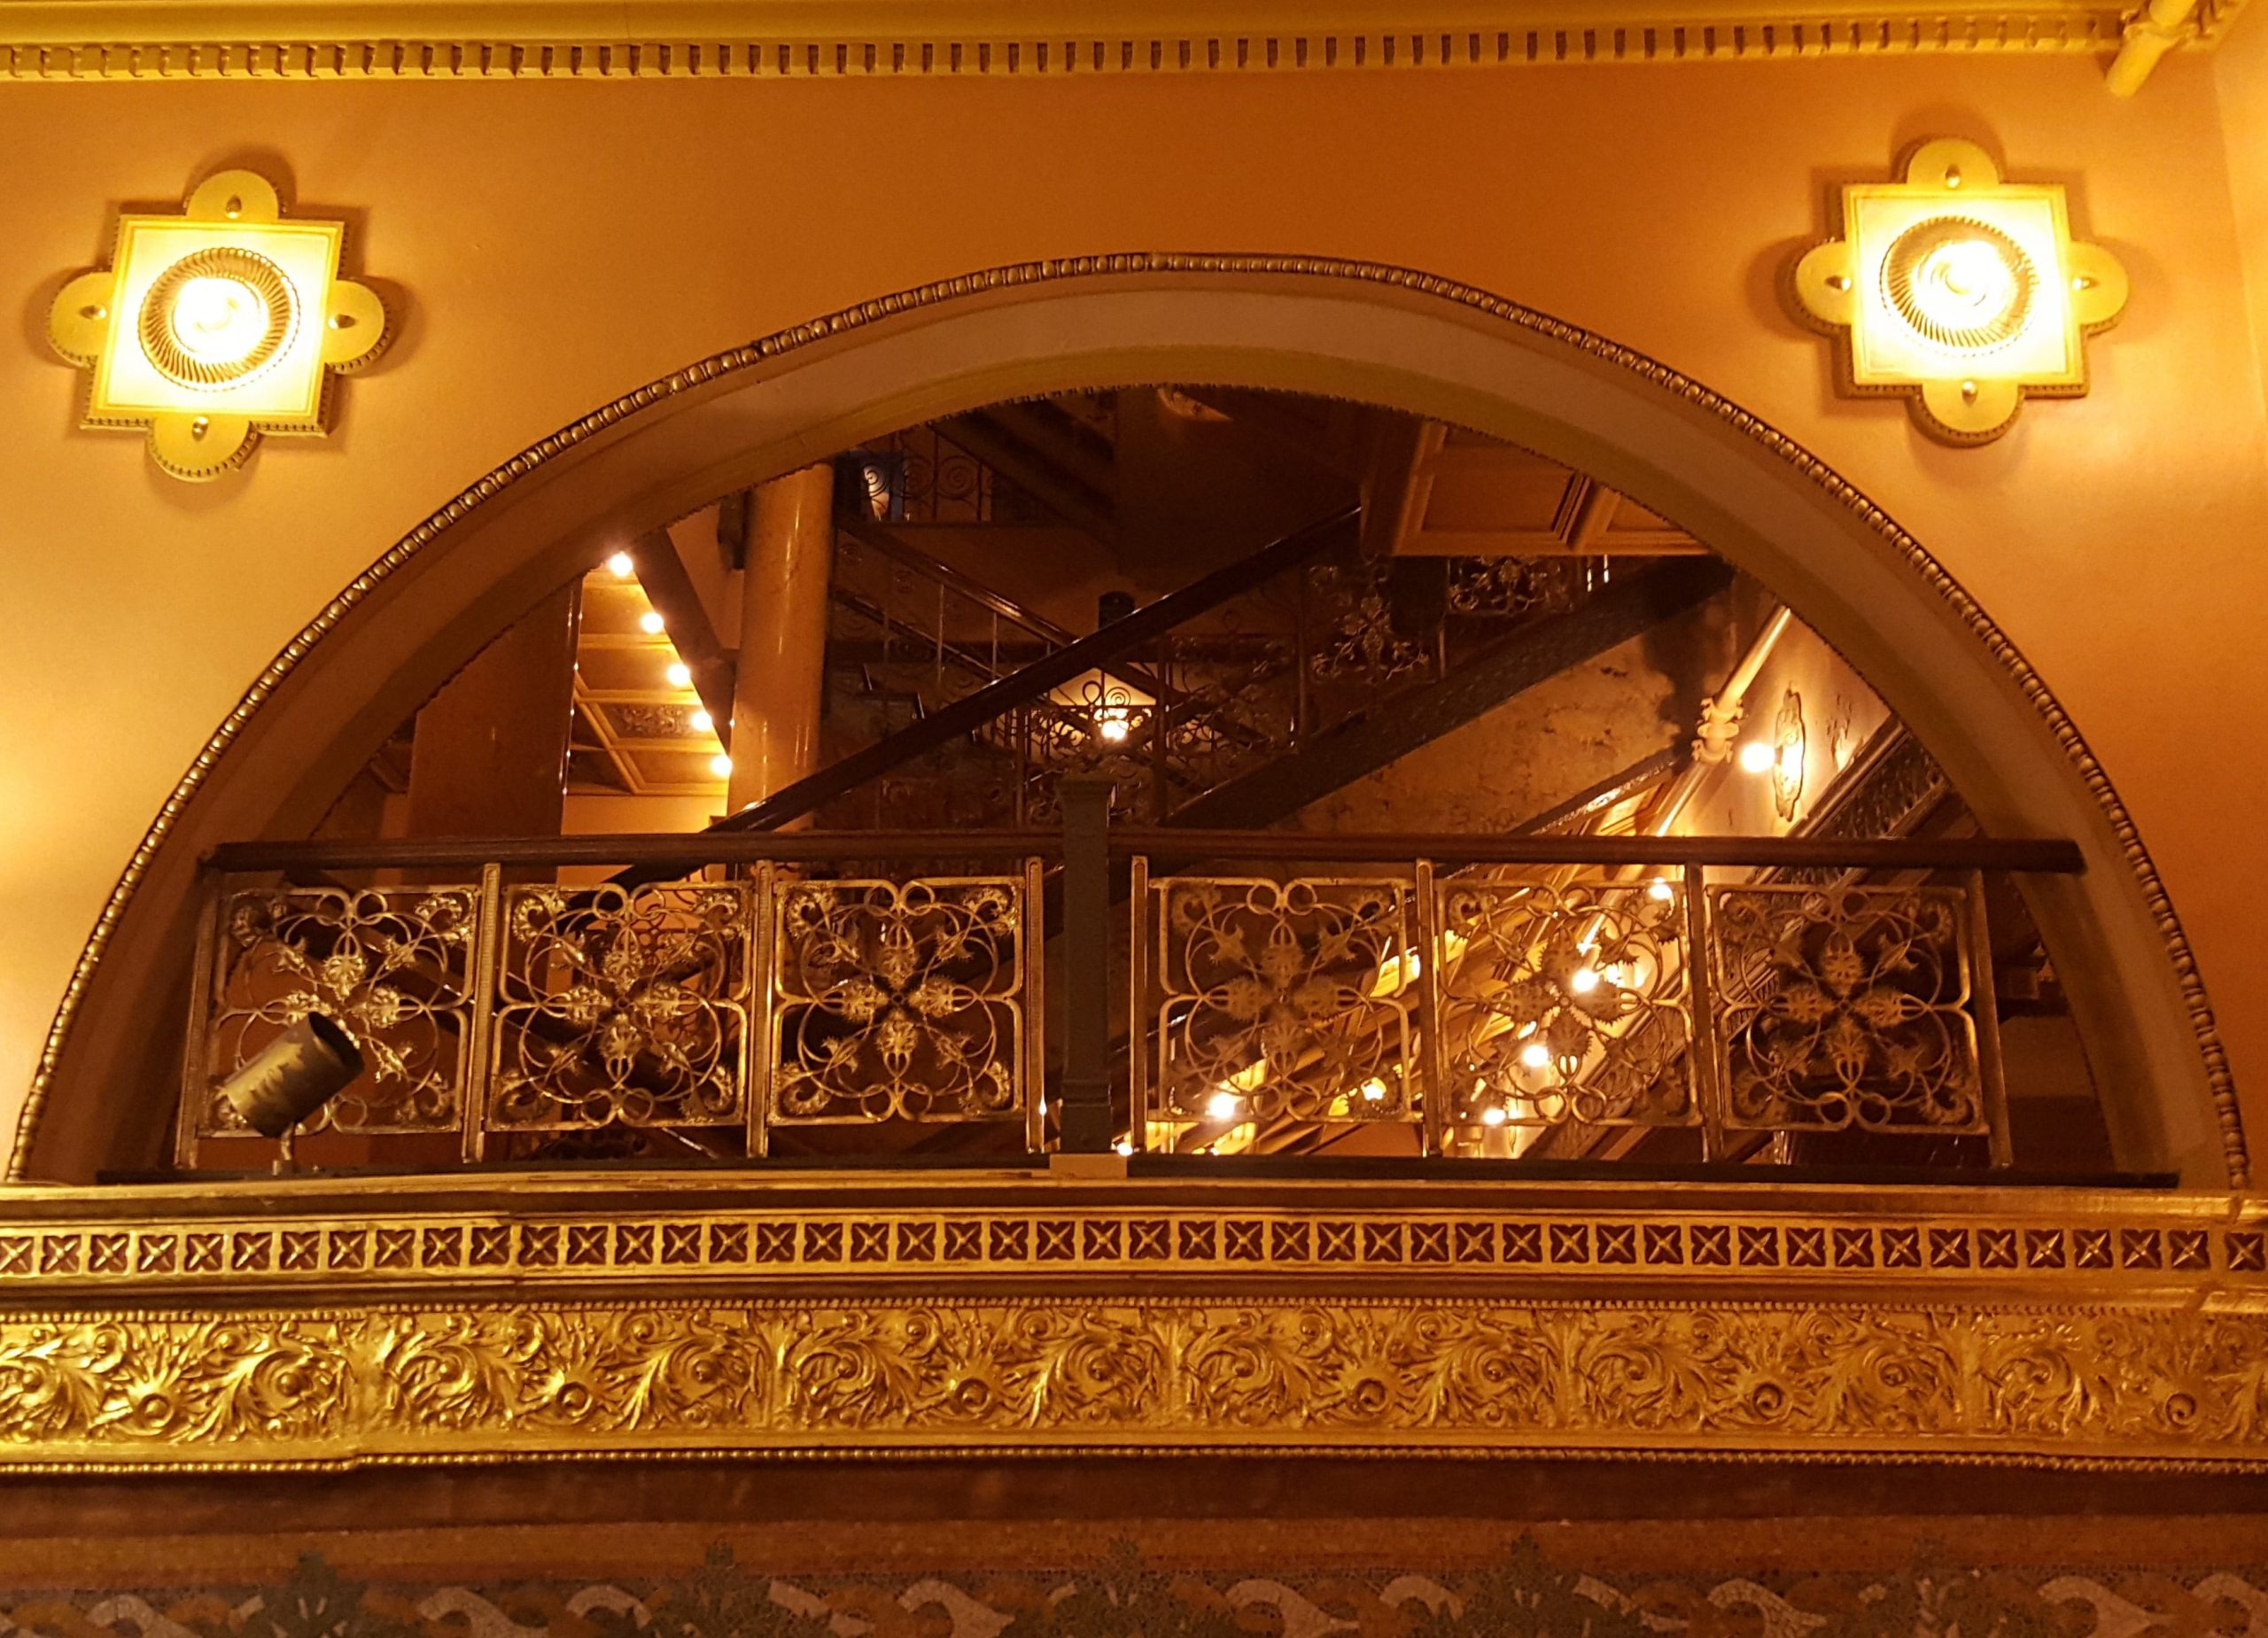 Auditorium Theater Louis Sullivan Dankmar Adler intricate designs